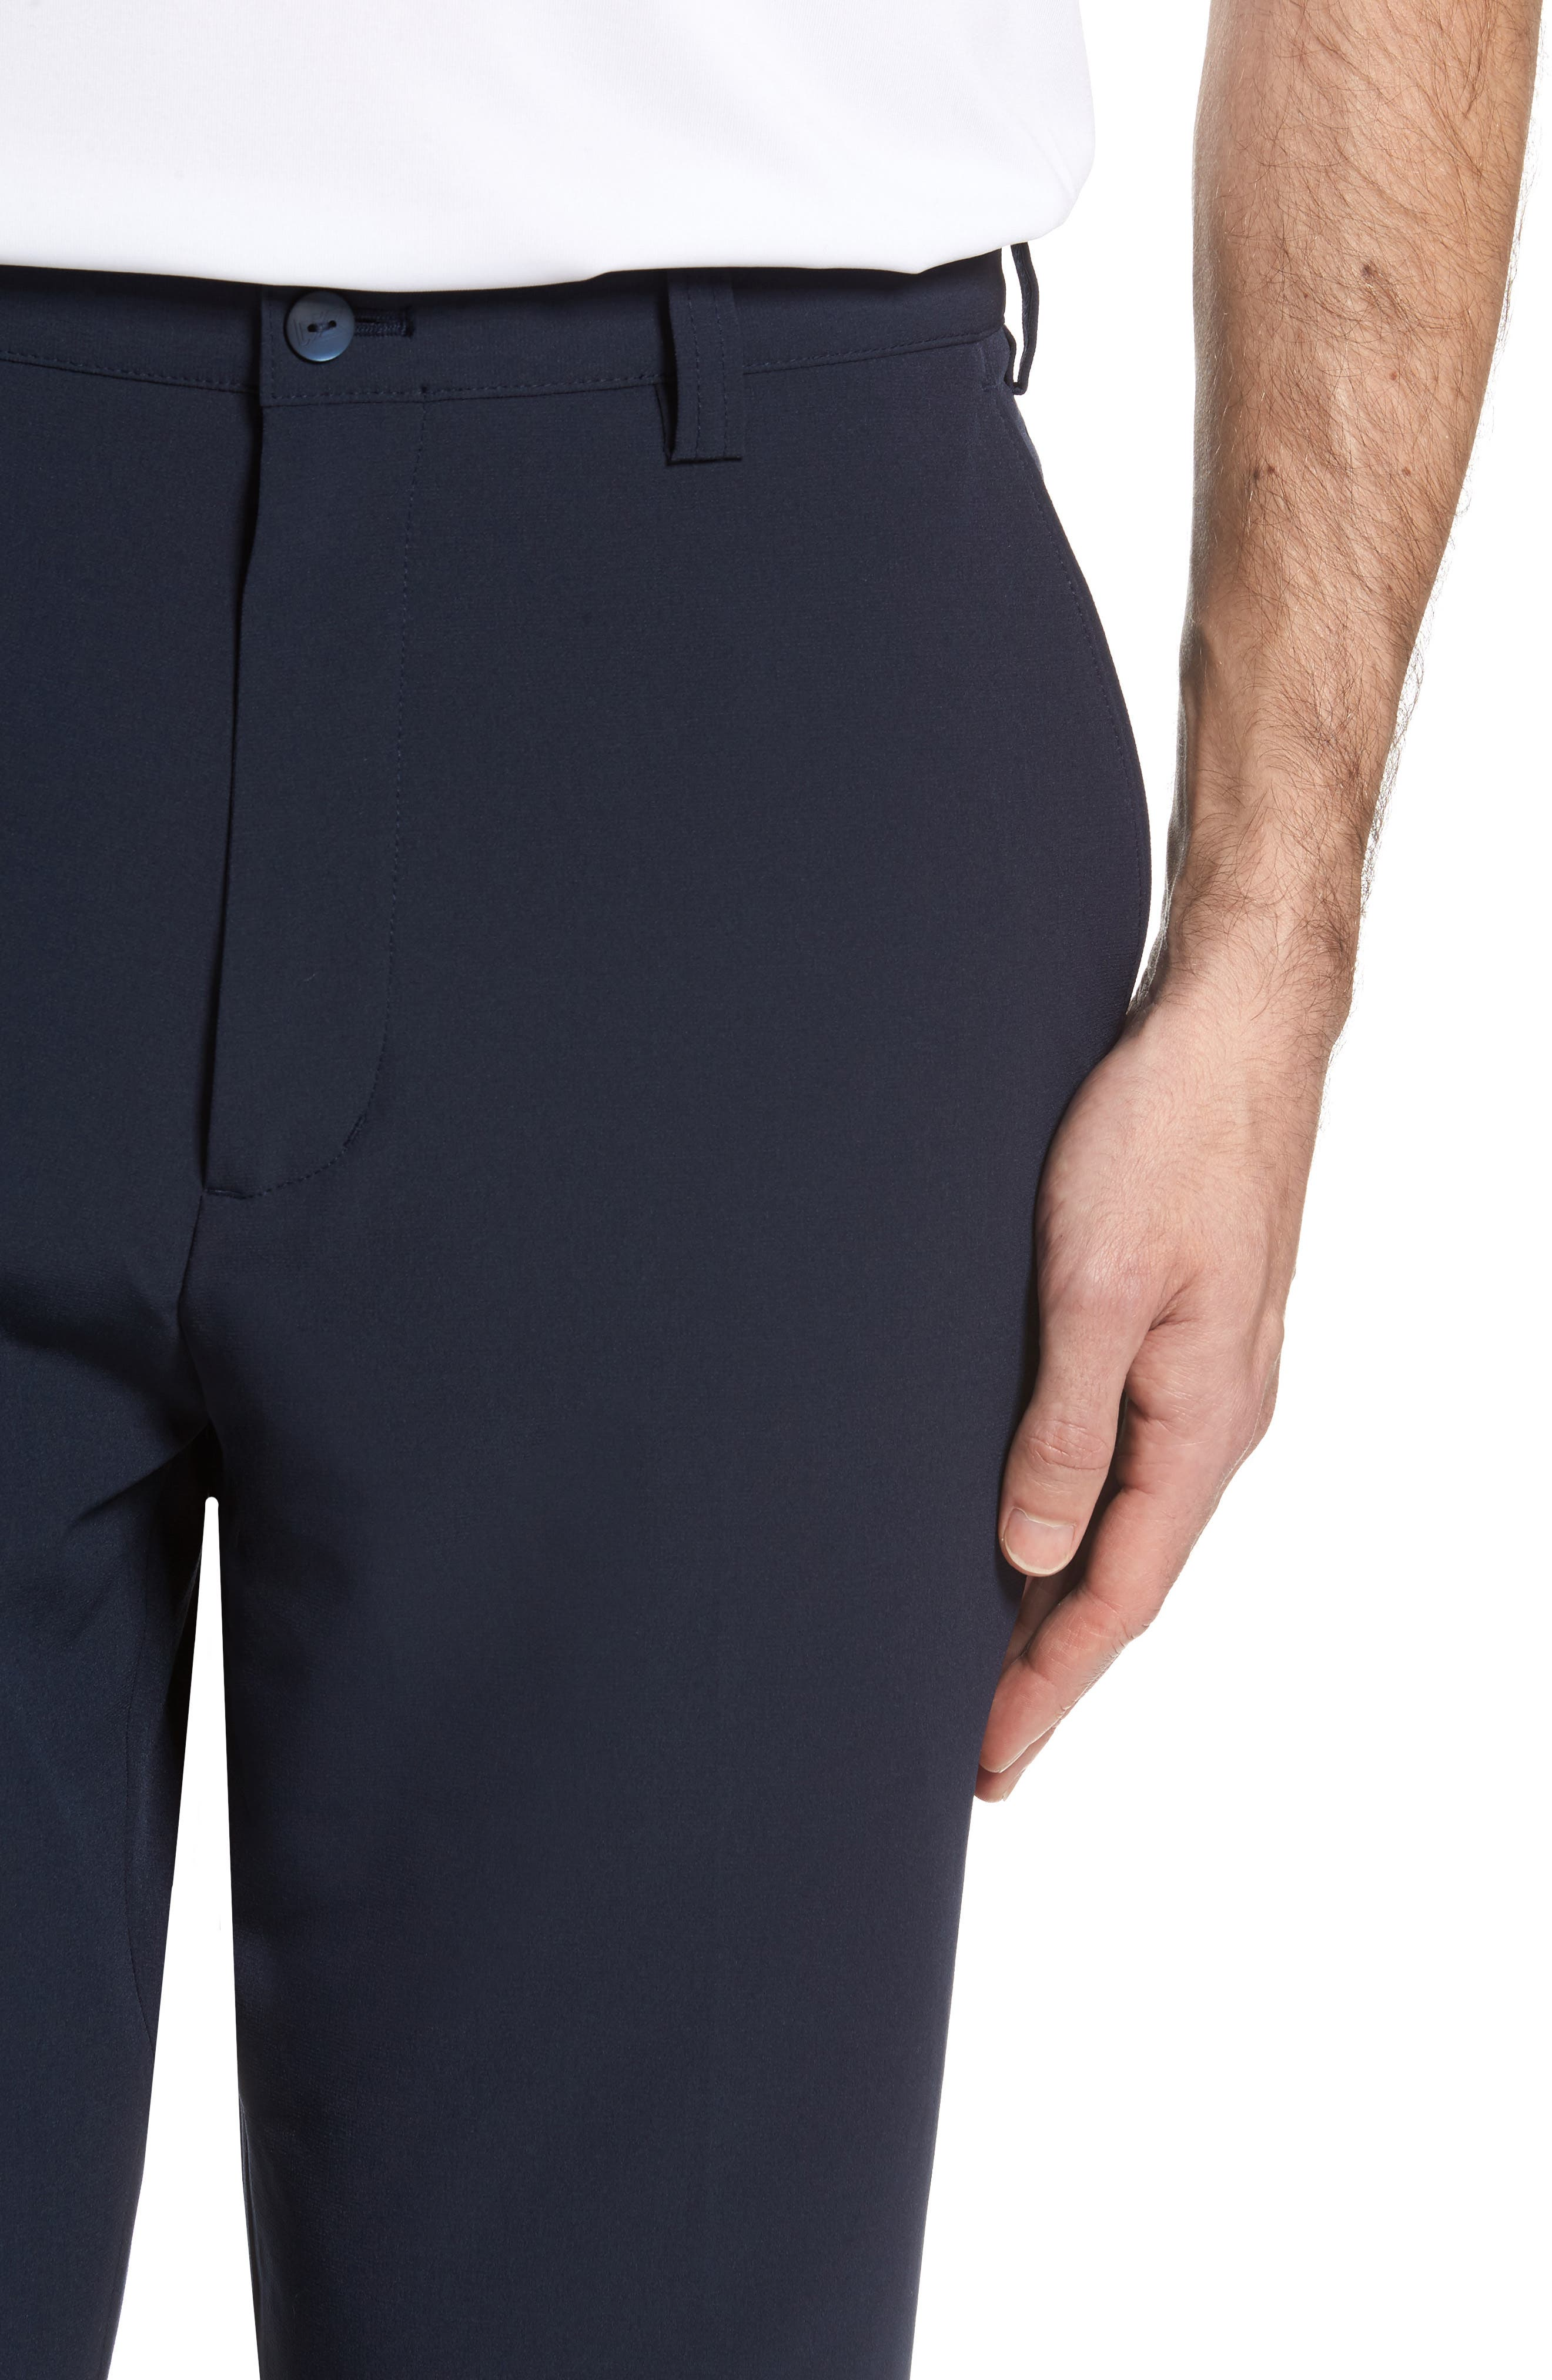 DryTec Chinos,                             Alternate thumbnail 4, color,                             Navy Blue